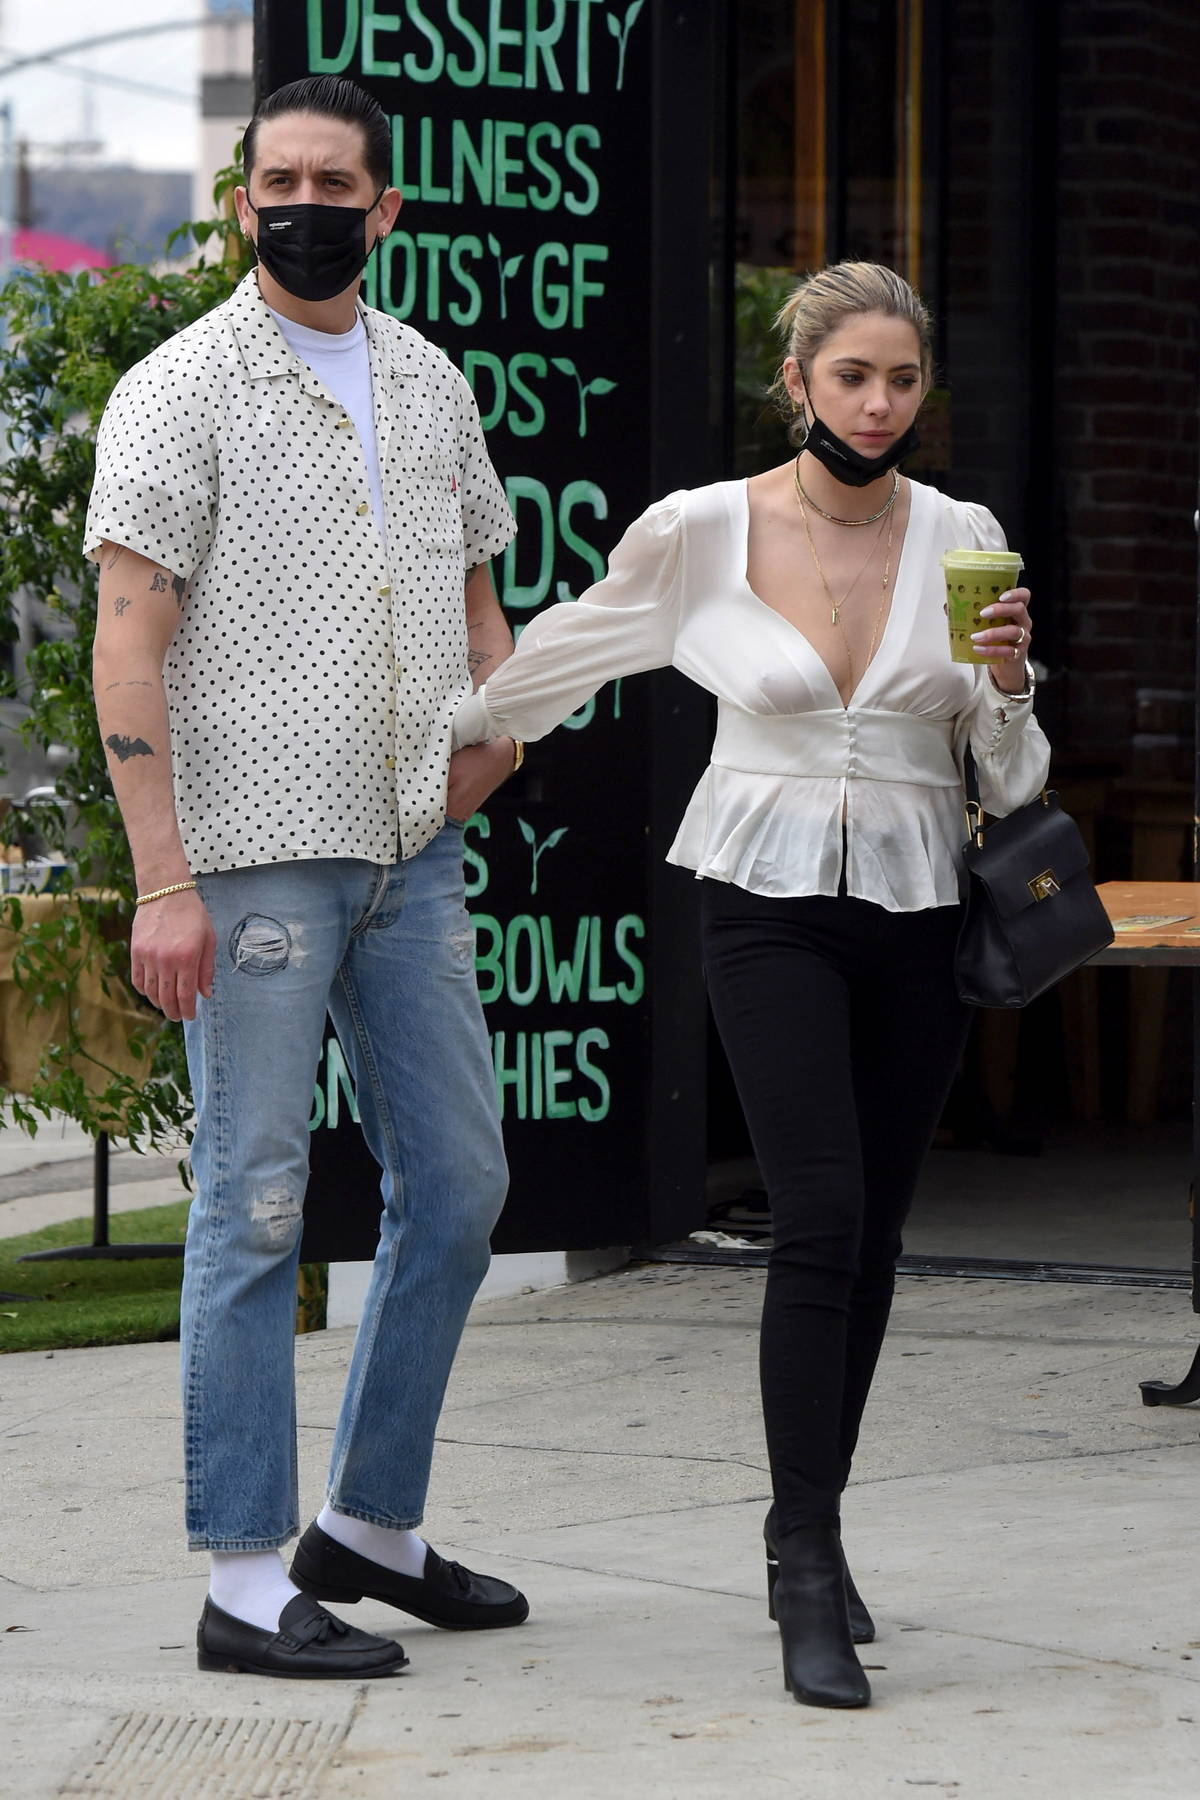 Ashley Benson and G-Eazy pack on some PDA during a shopping trip in Los Angeles